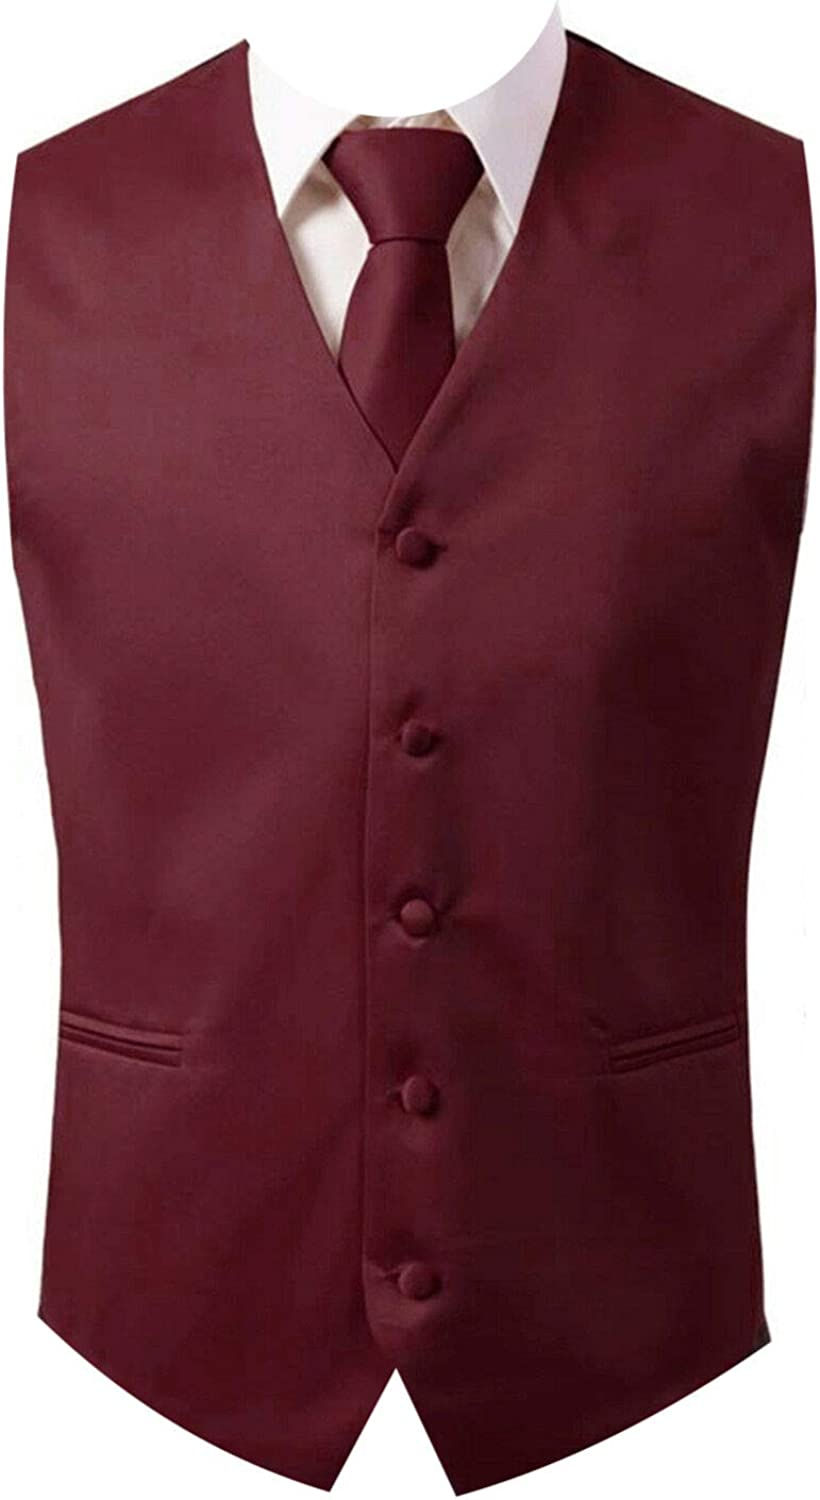 Brand Q 3pc Men's Dress Vest for Set Square Necktie Spring new work one after another Max 64% OFF Pocket Suit